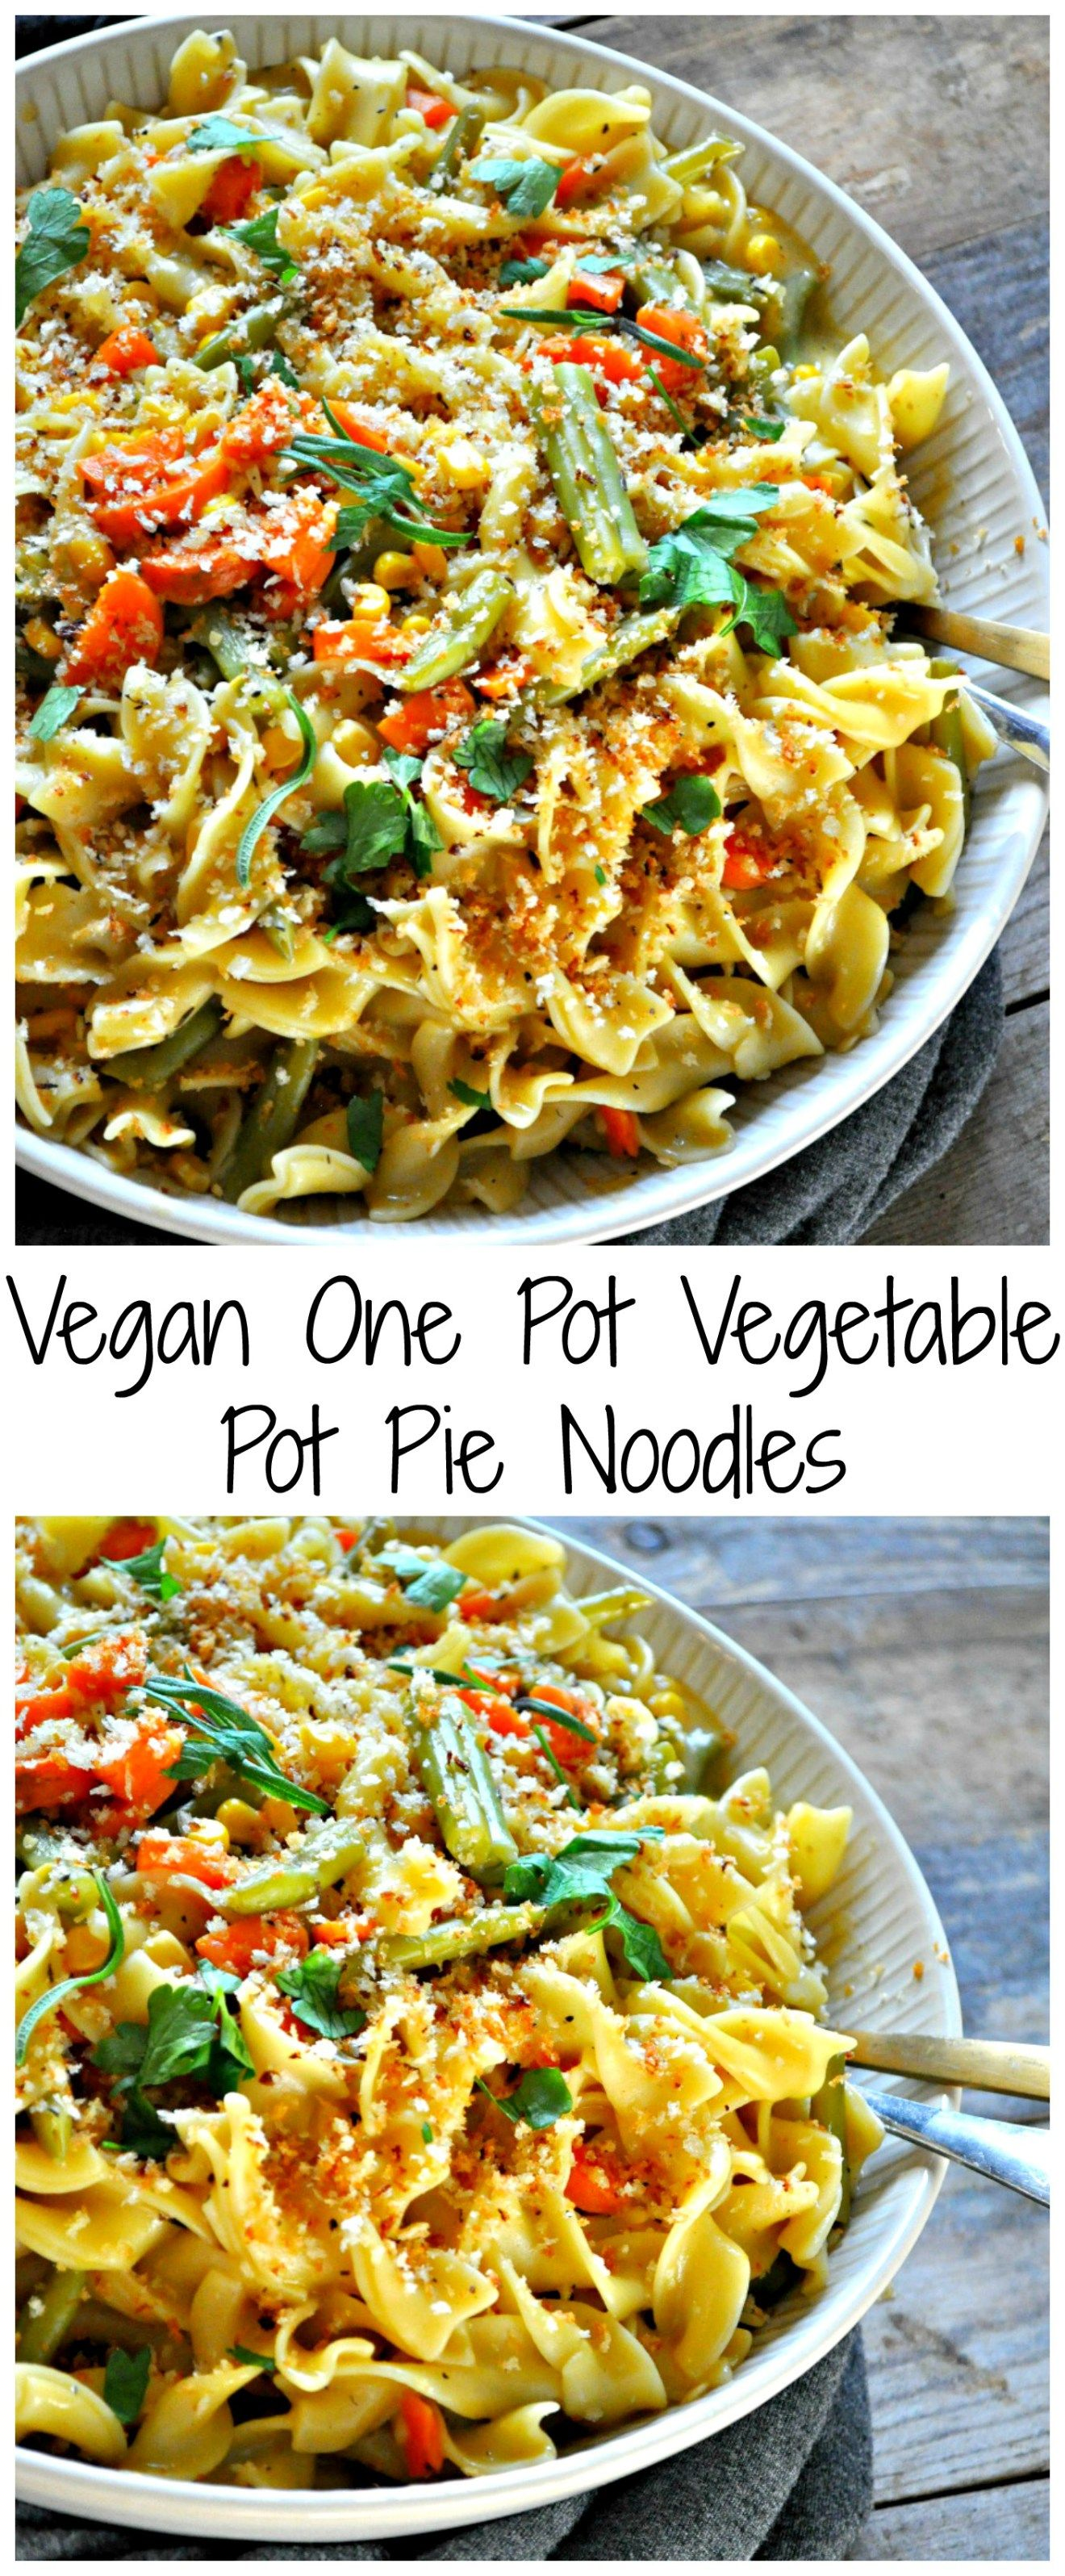 Vegan One Pot Vegetable Pot Pie Noodles - Rabbit and Wolves